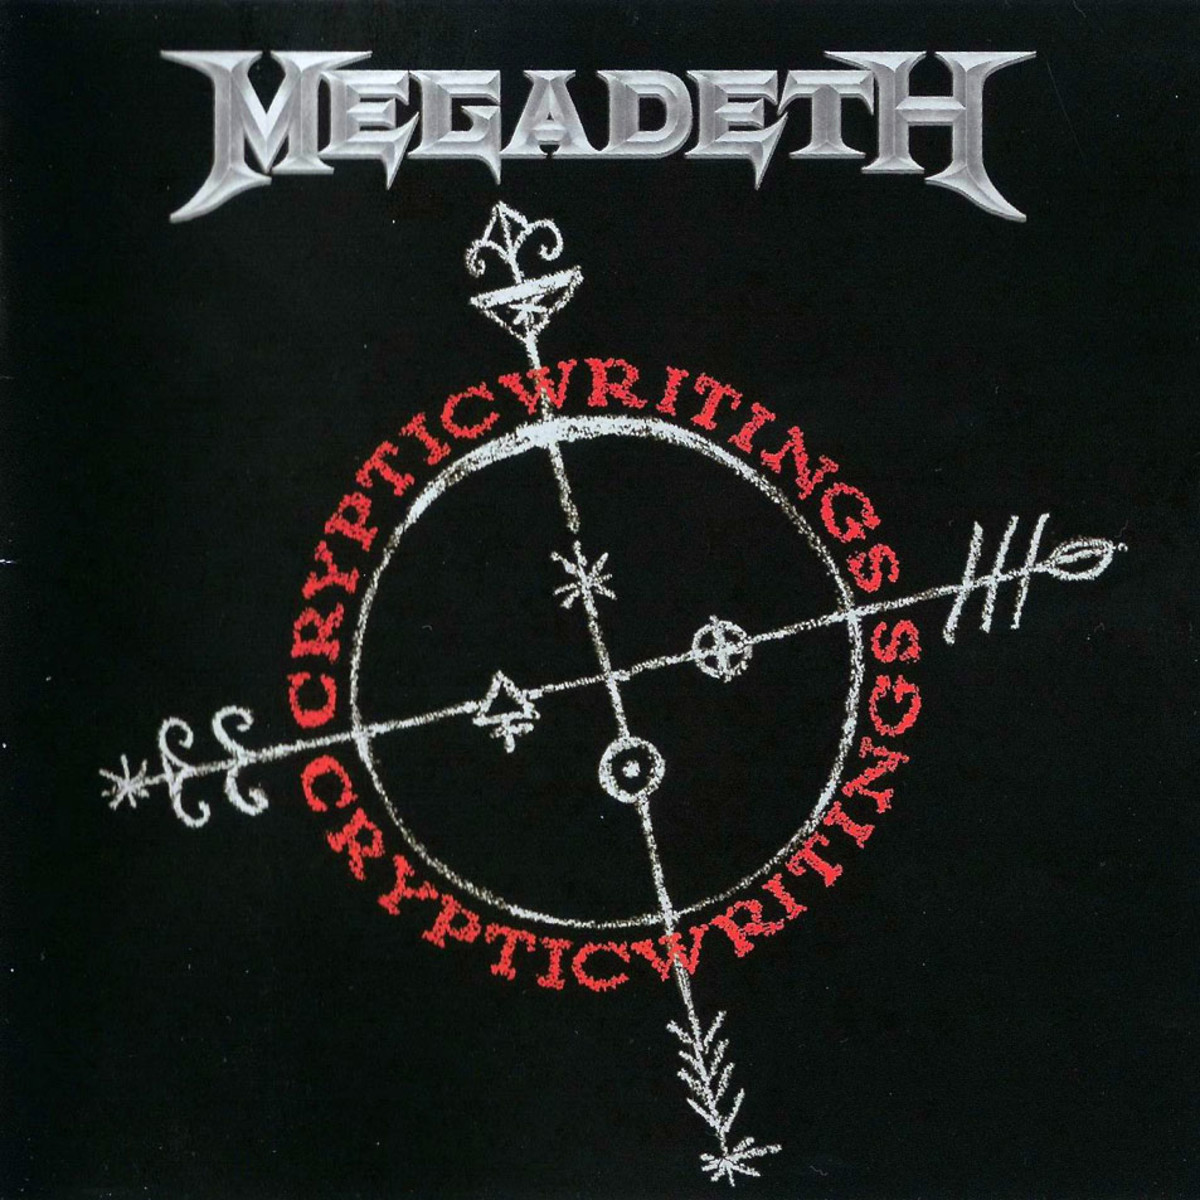 Review of the Album Cryptic Writings by American Heavy Metal Band Megadeth